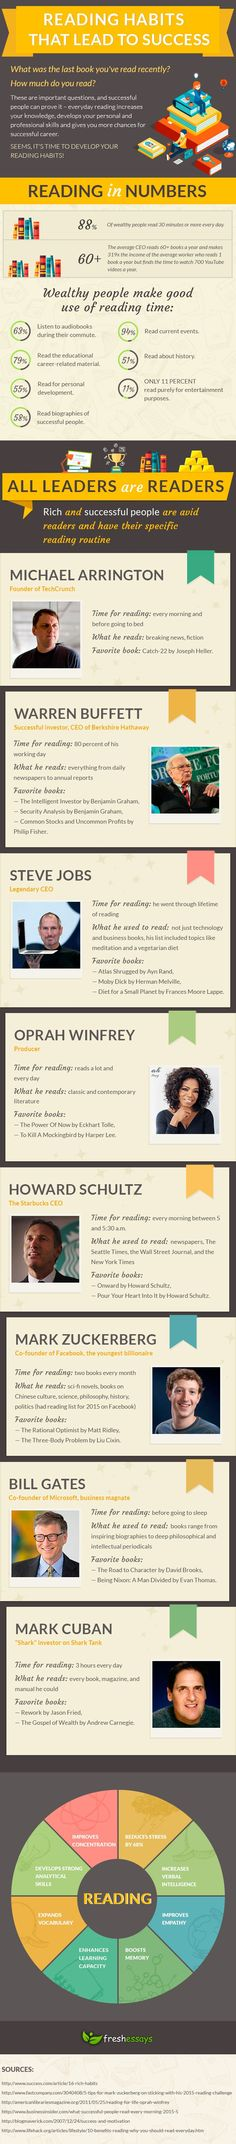 Reading Habits That Lead to Success #Infographic #ReadingHabit #SuccessStories